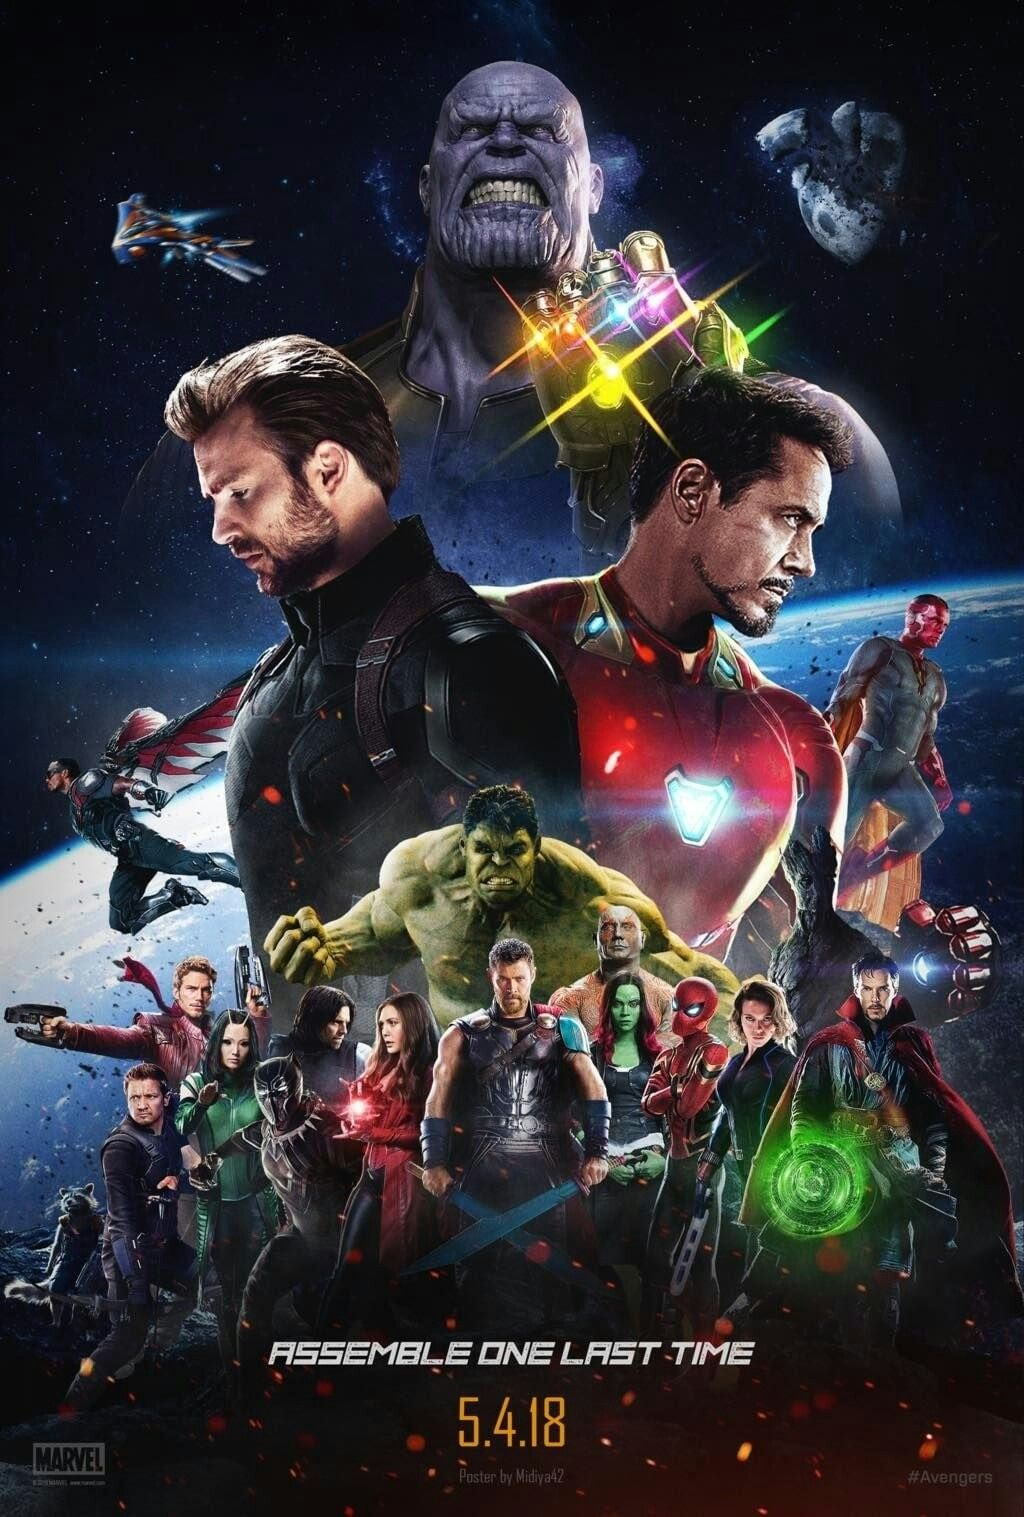 Avengers Infinity War Movie Poster Avengers Infinitywar Fantastic Movie Posters Scifimovies Posters Horrormovies Post Marvel Los Vengadores Universo Marvel